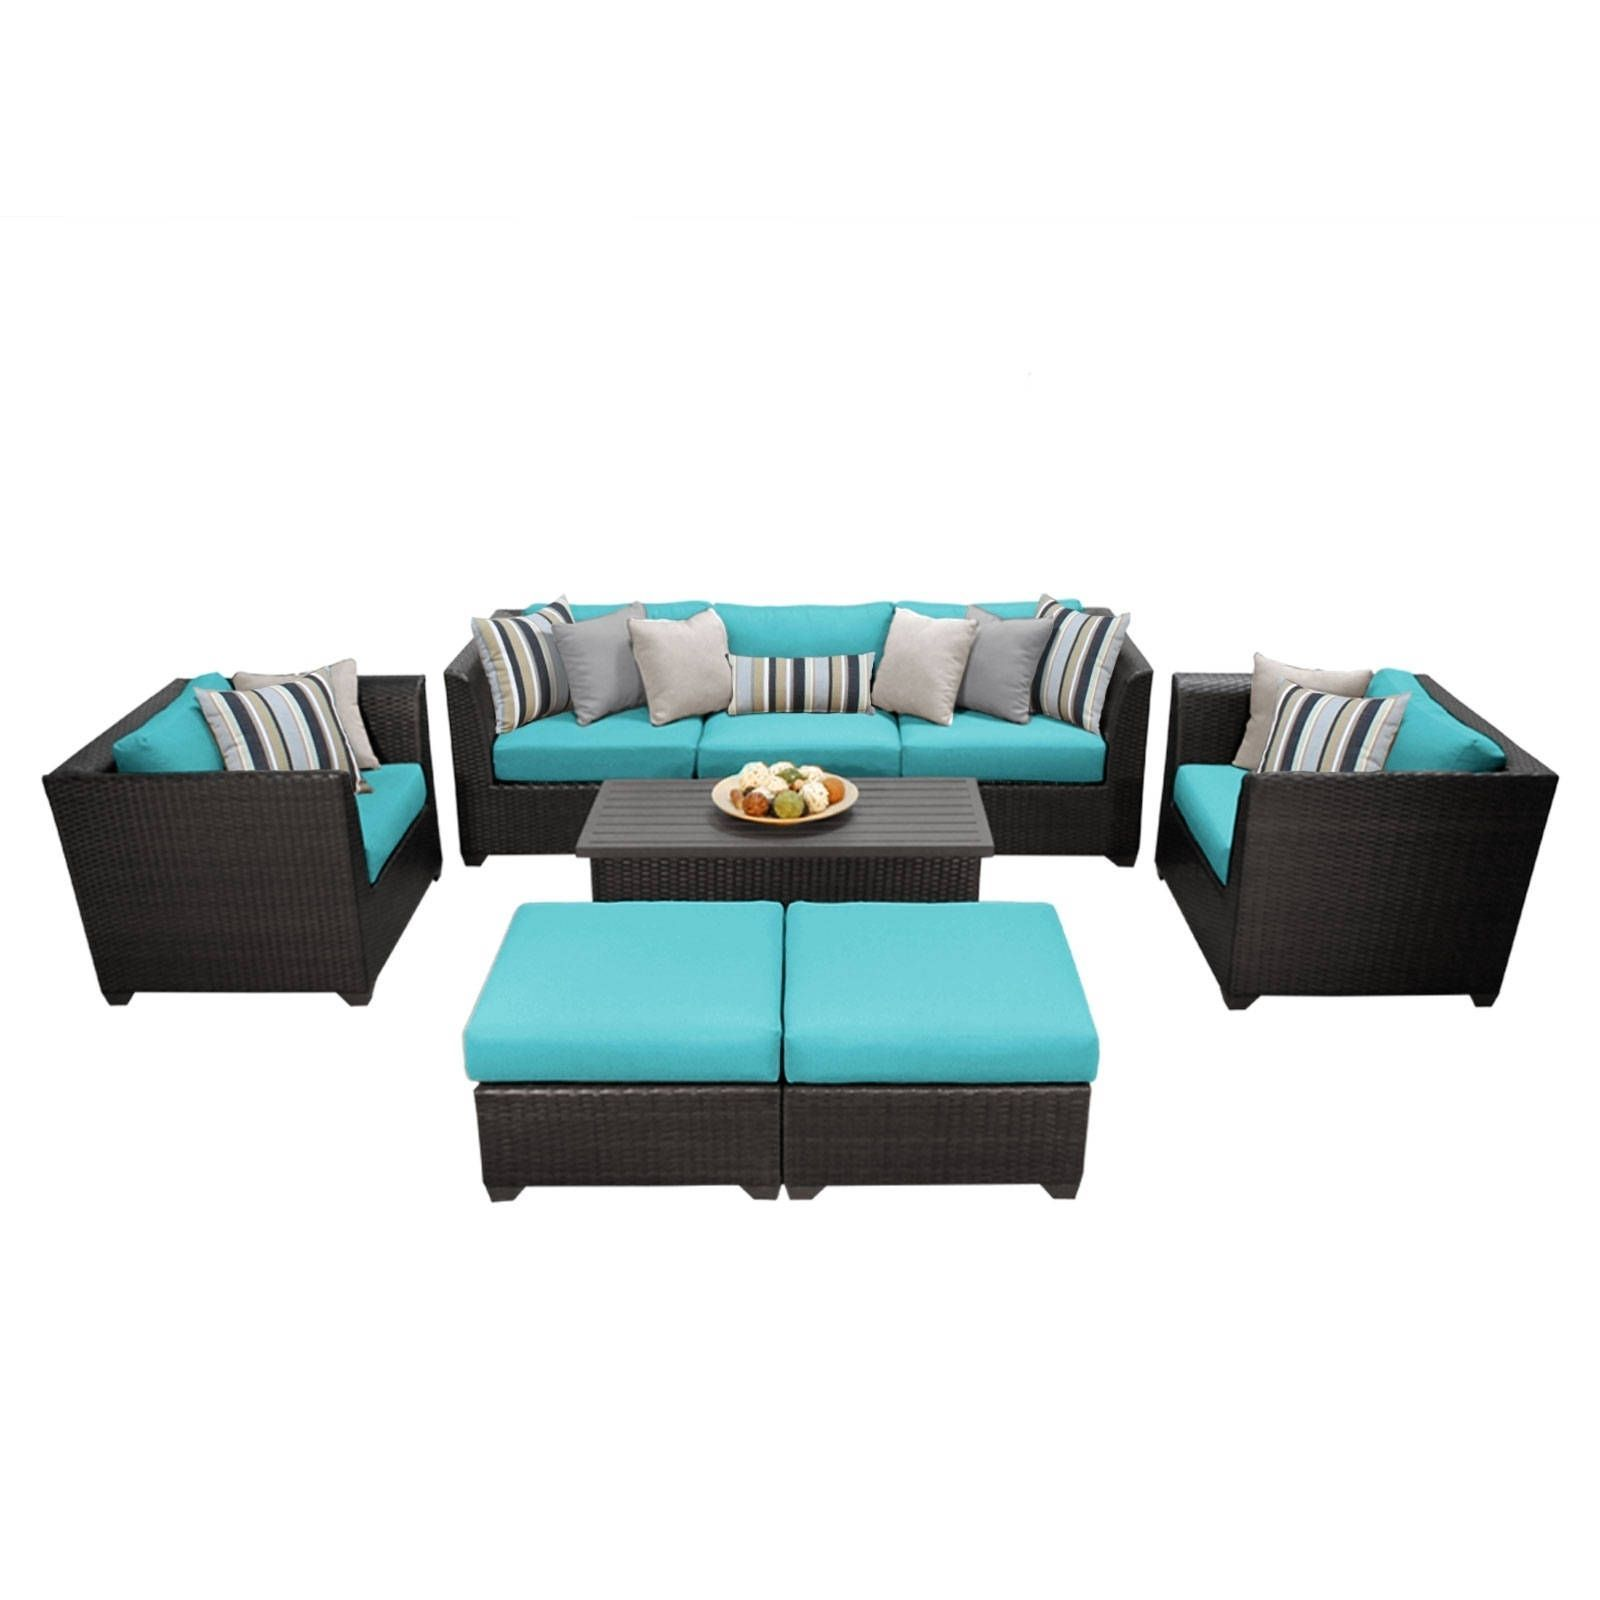 Meridian 8 Piece Outdoor Patio Wicker Lounge Set (Turquoise), Blue, Size 8